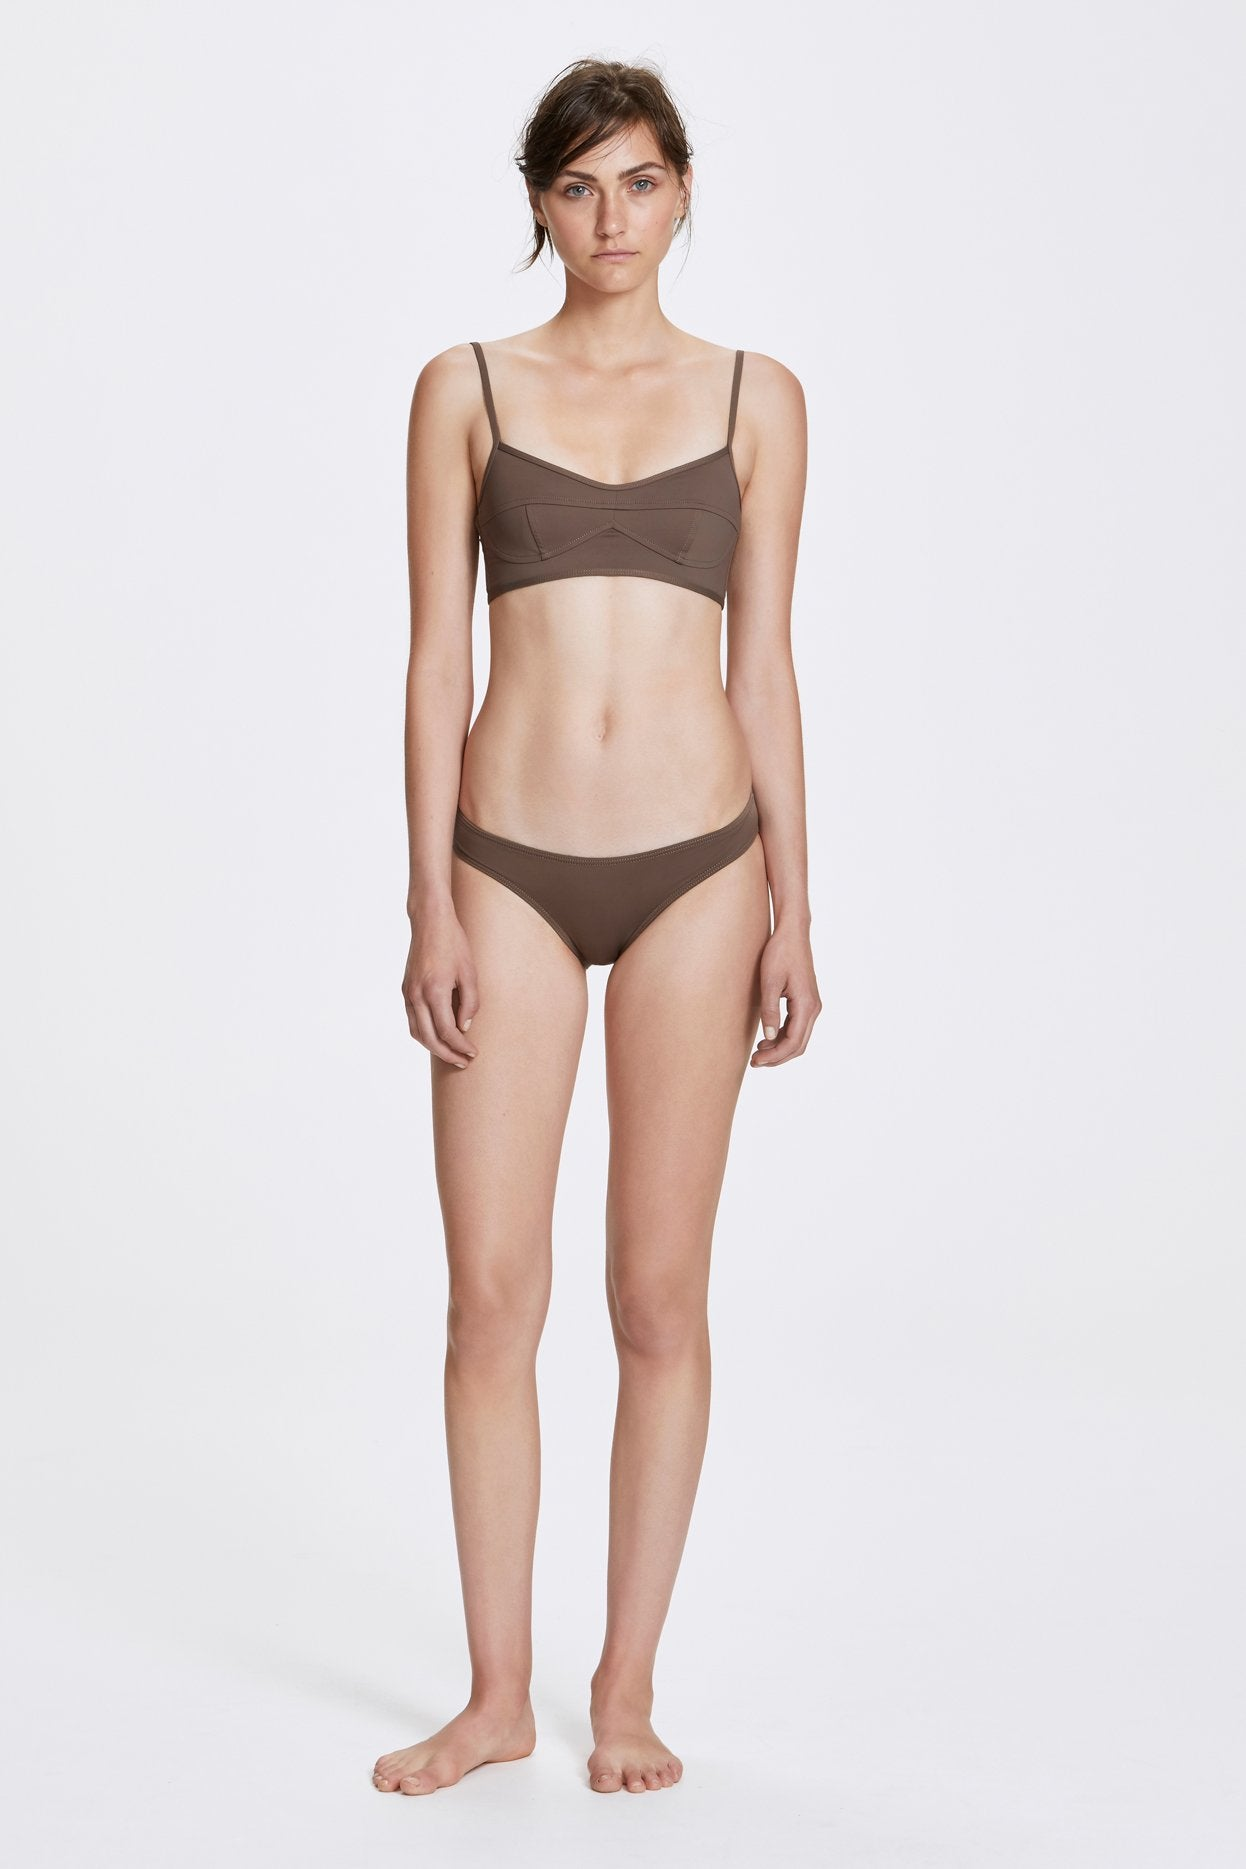 Her Line Suzi Swimwear Set Terra Brown Front